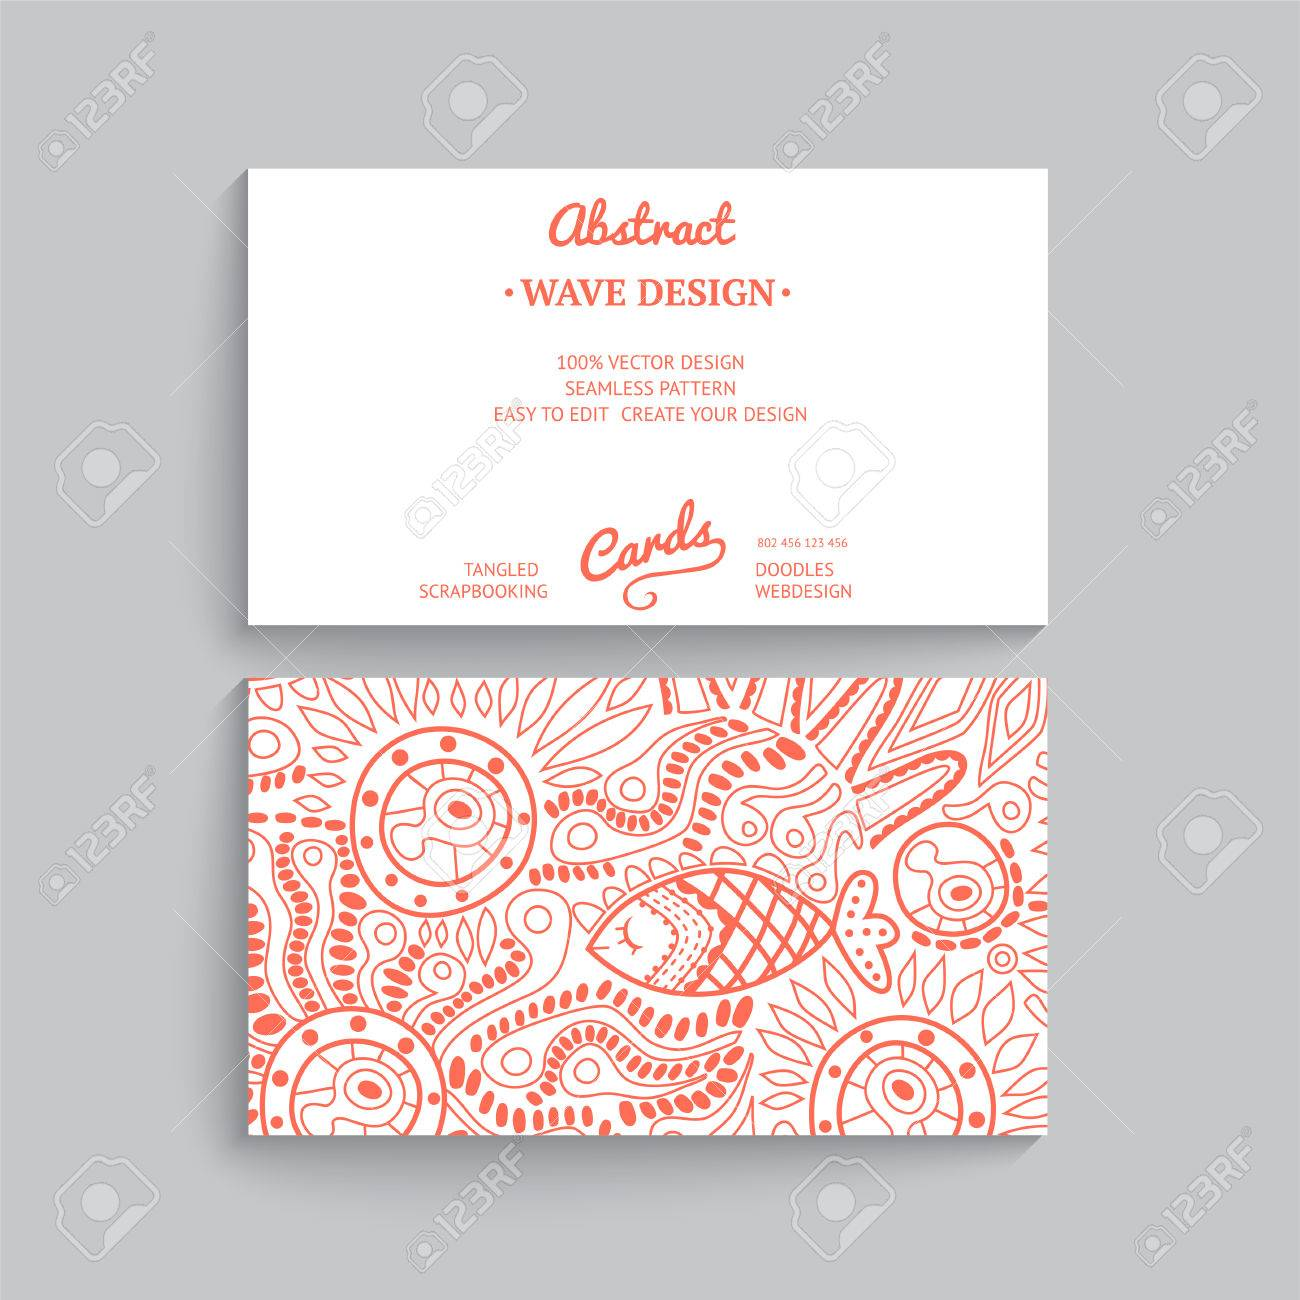 vector vector simple business card template with decorative ornament original design wave decoration minimalistic design seamless pattern is masked